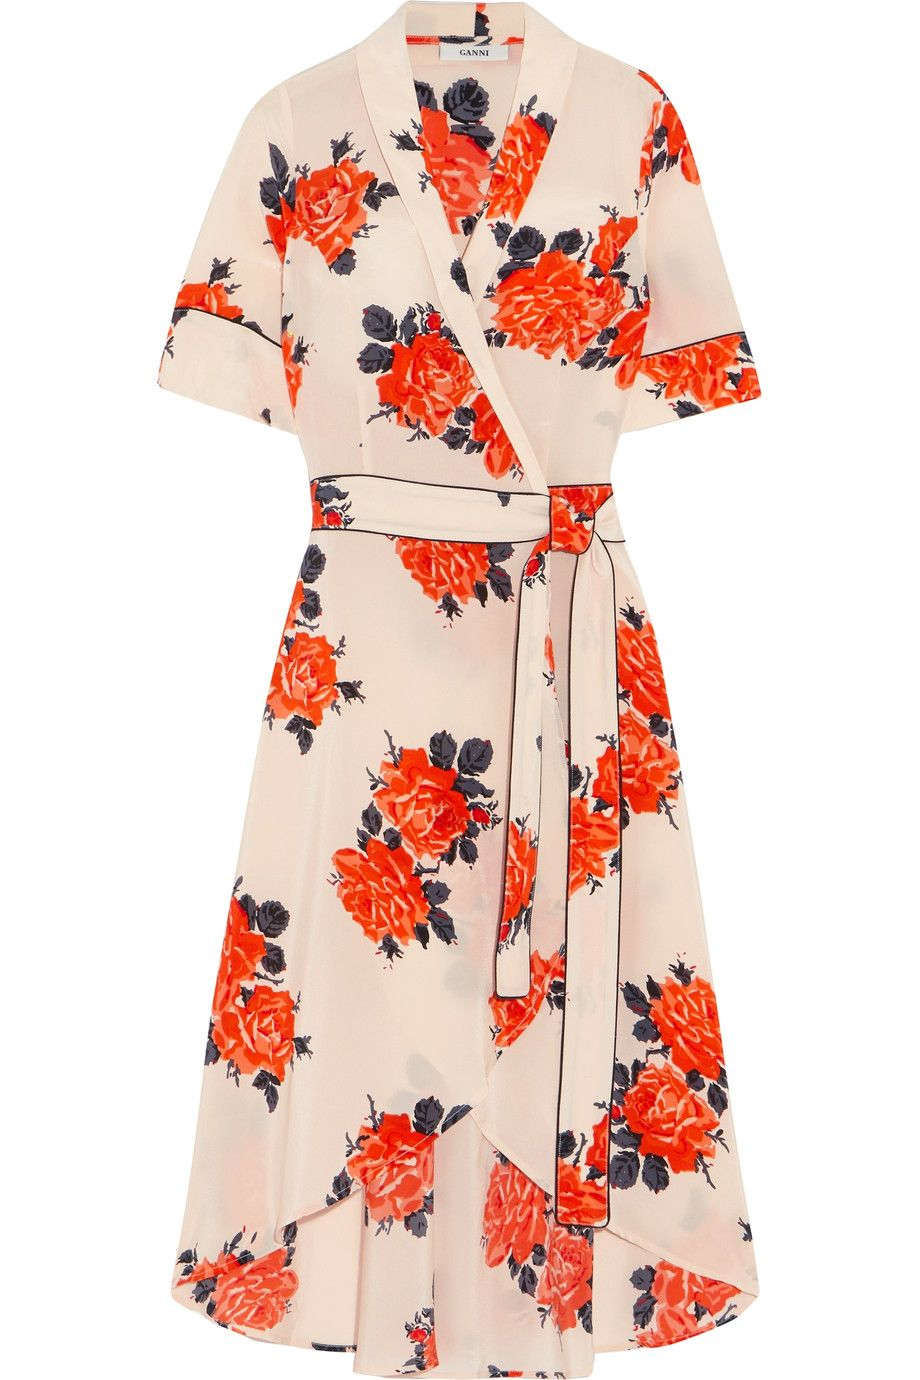 99954cfce280 GANNI | Harness floral-print silk crepe de chine wrap dress |  NET-A-PORTER.COM